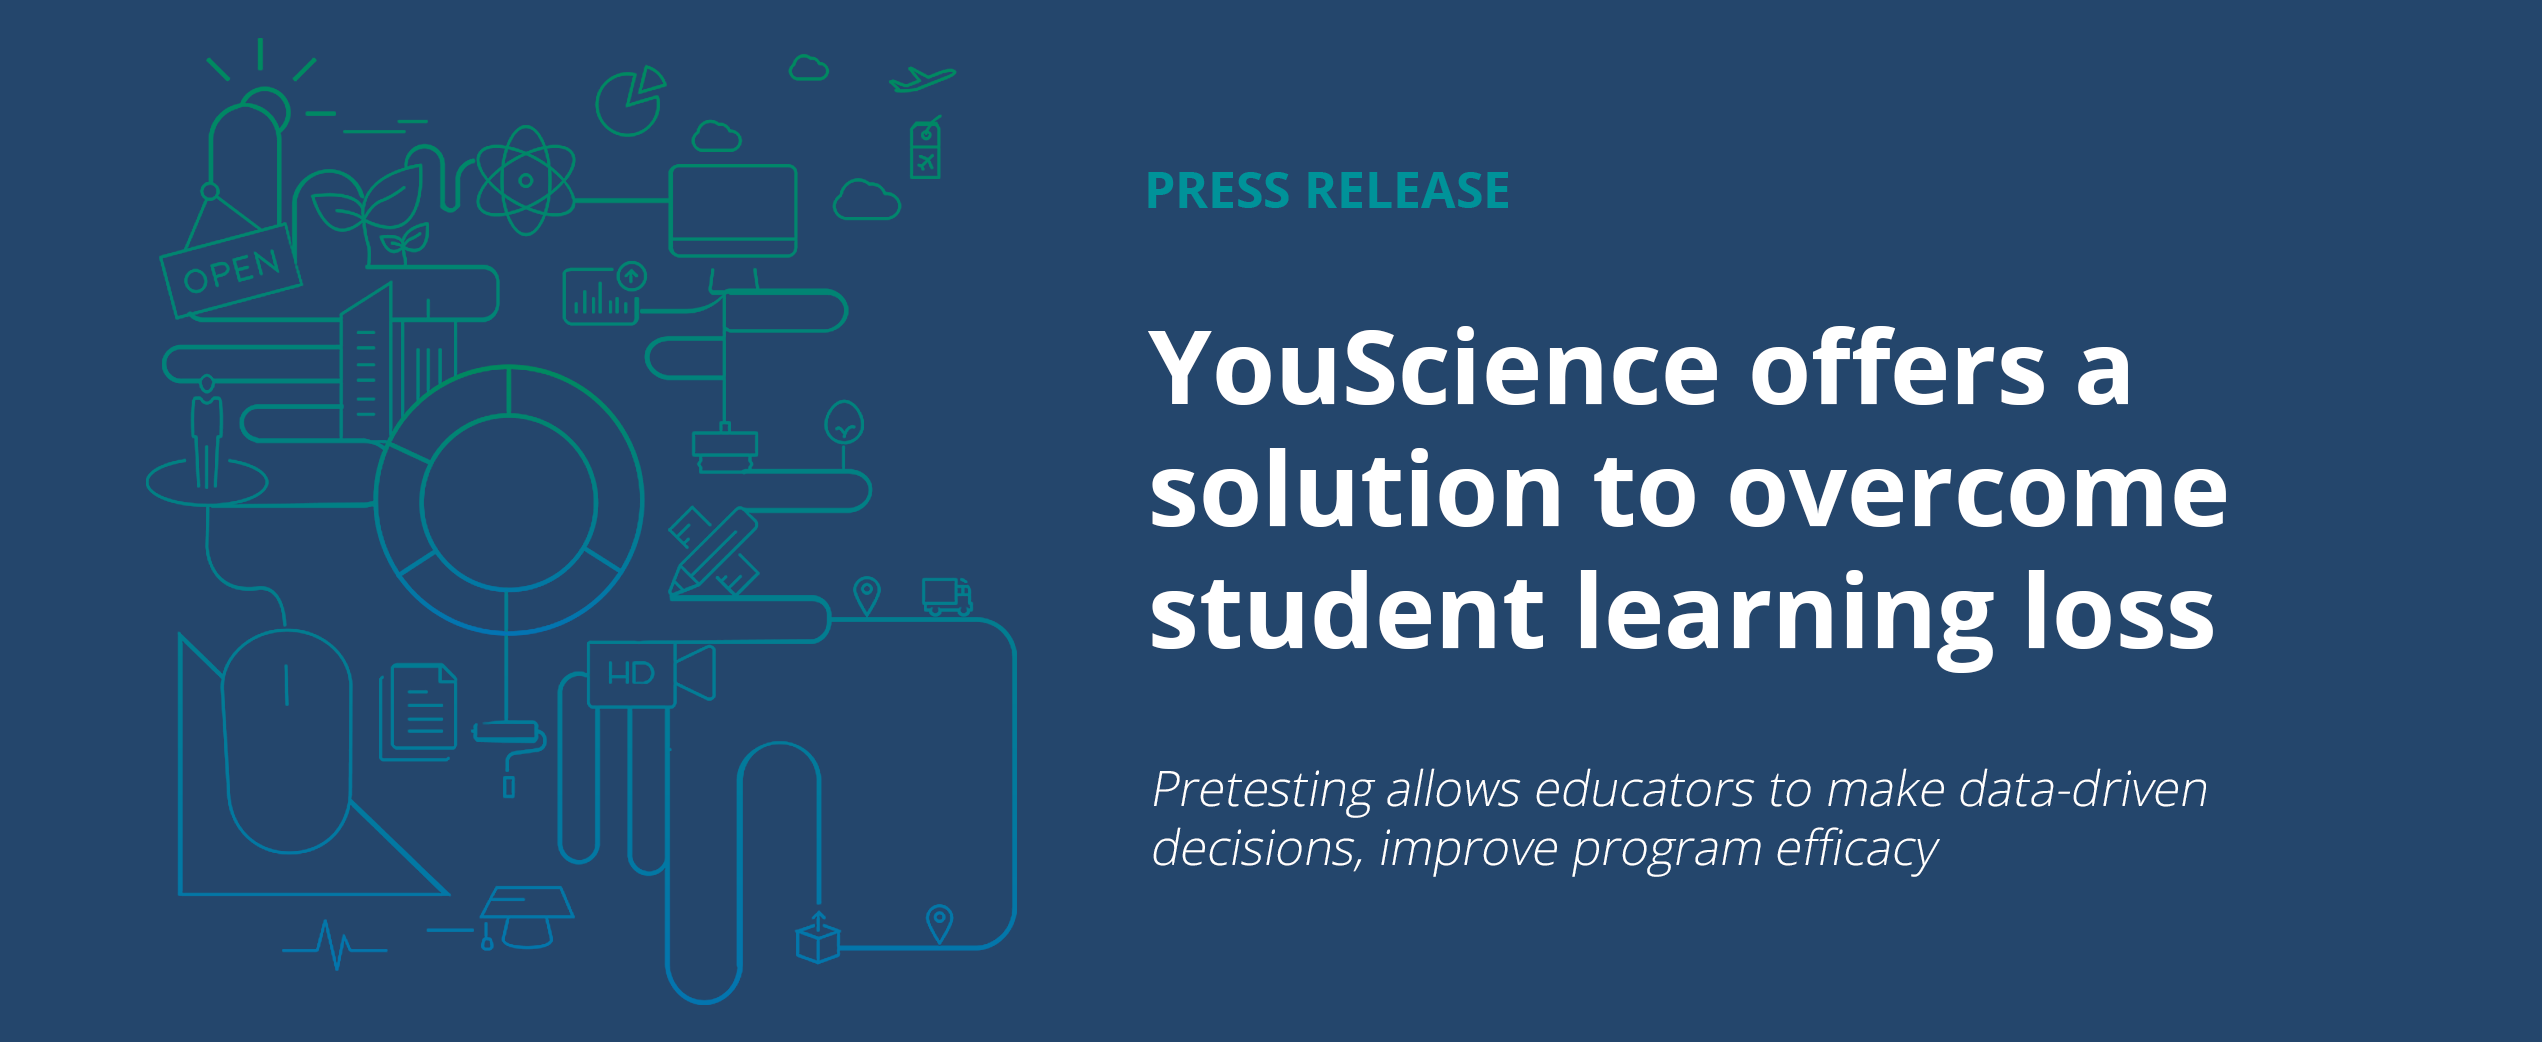 YouScience offers a solution to overcome student learning loss